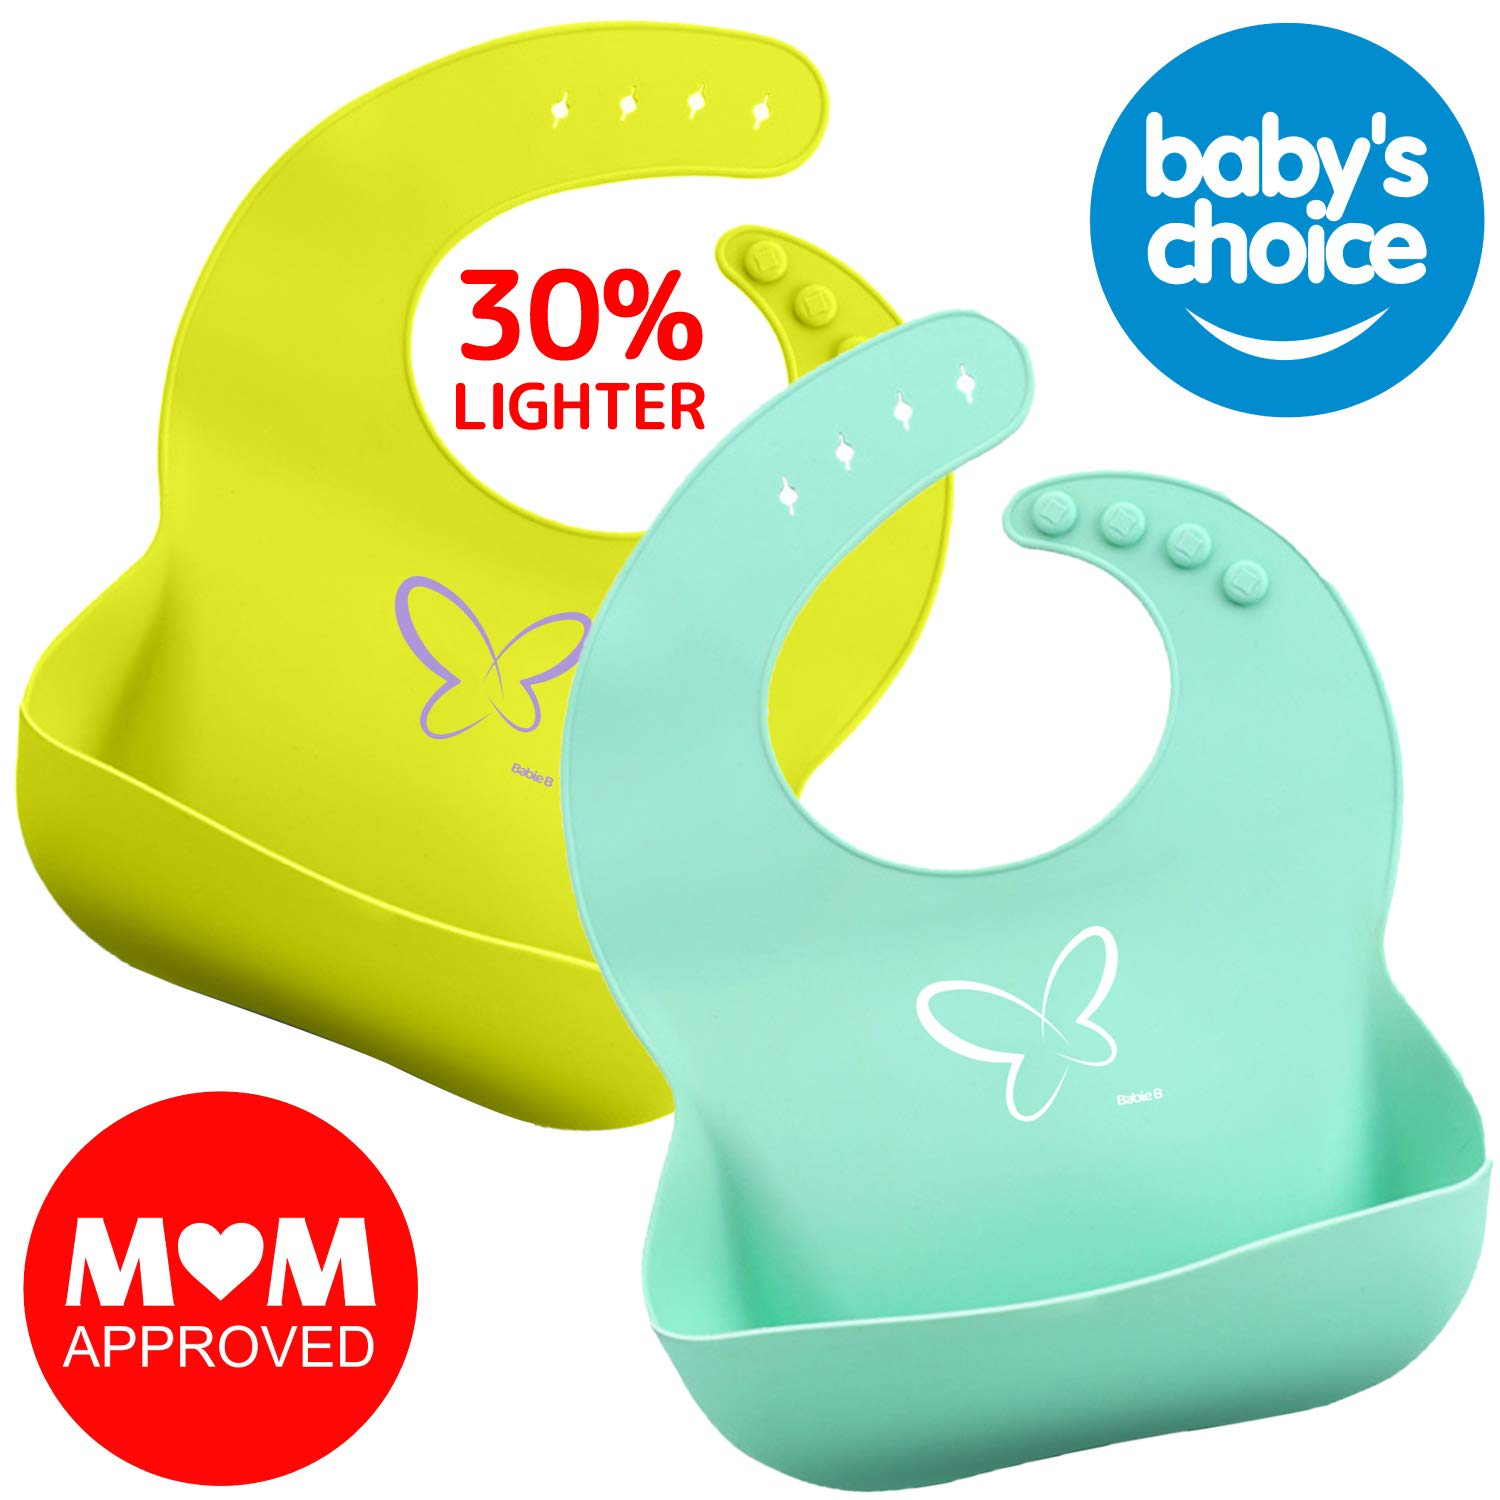 Baby Silicone Bib for Girls and Boys-Toddlers-Waterproof-Easly Wipe Clean w/Deep Food Catcher Pocket-BPA Free- Prevents Food Stain-Messy Floor-Reduces Laundry-Awesome Unisex Baby Shower Gift Set of 2 by Babie B